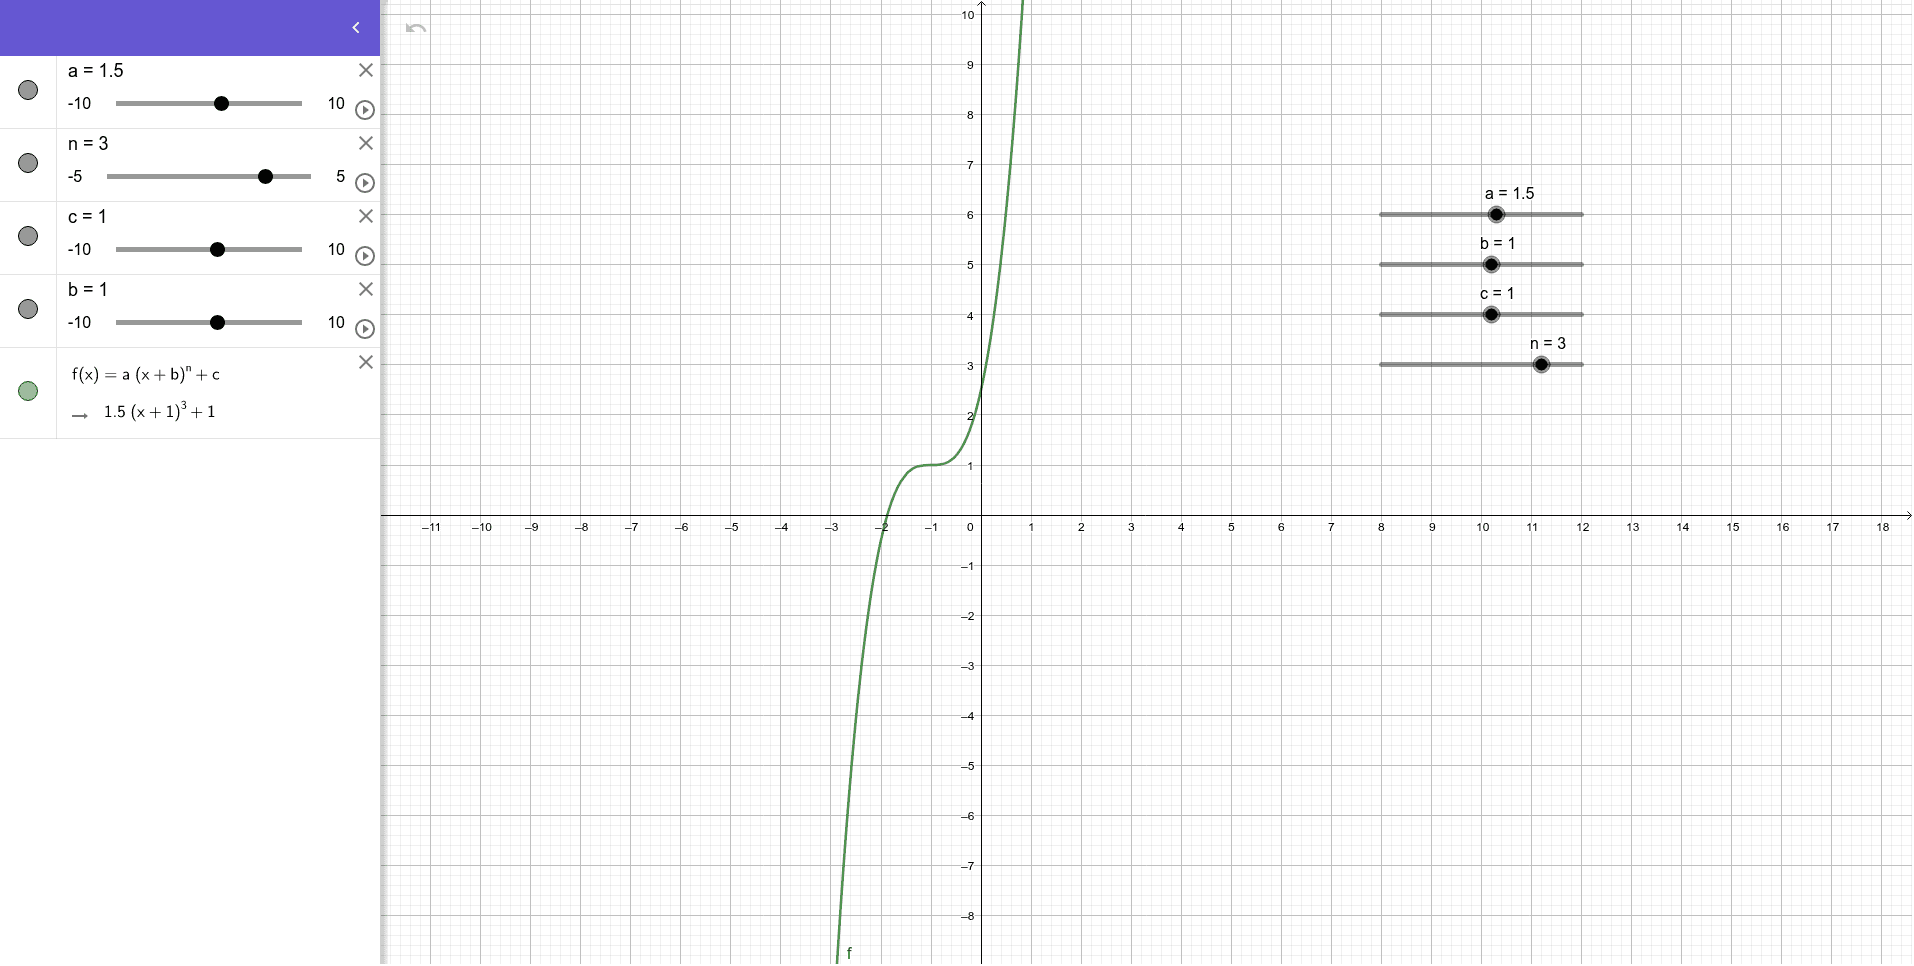 Move the sliders - How does the graph change?